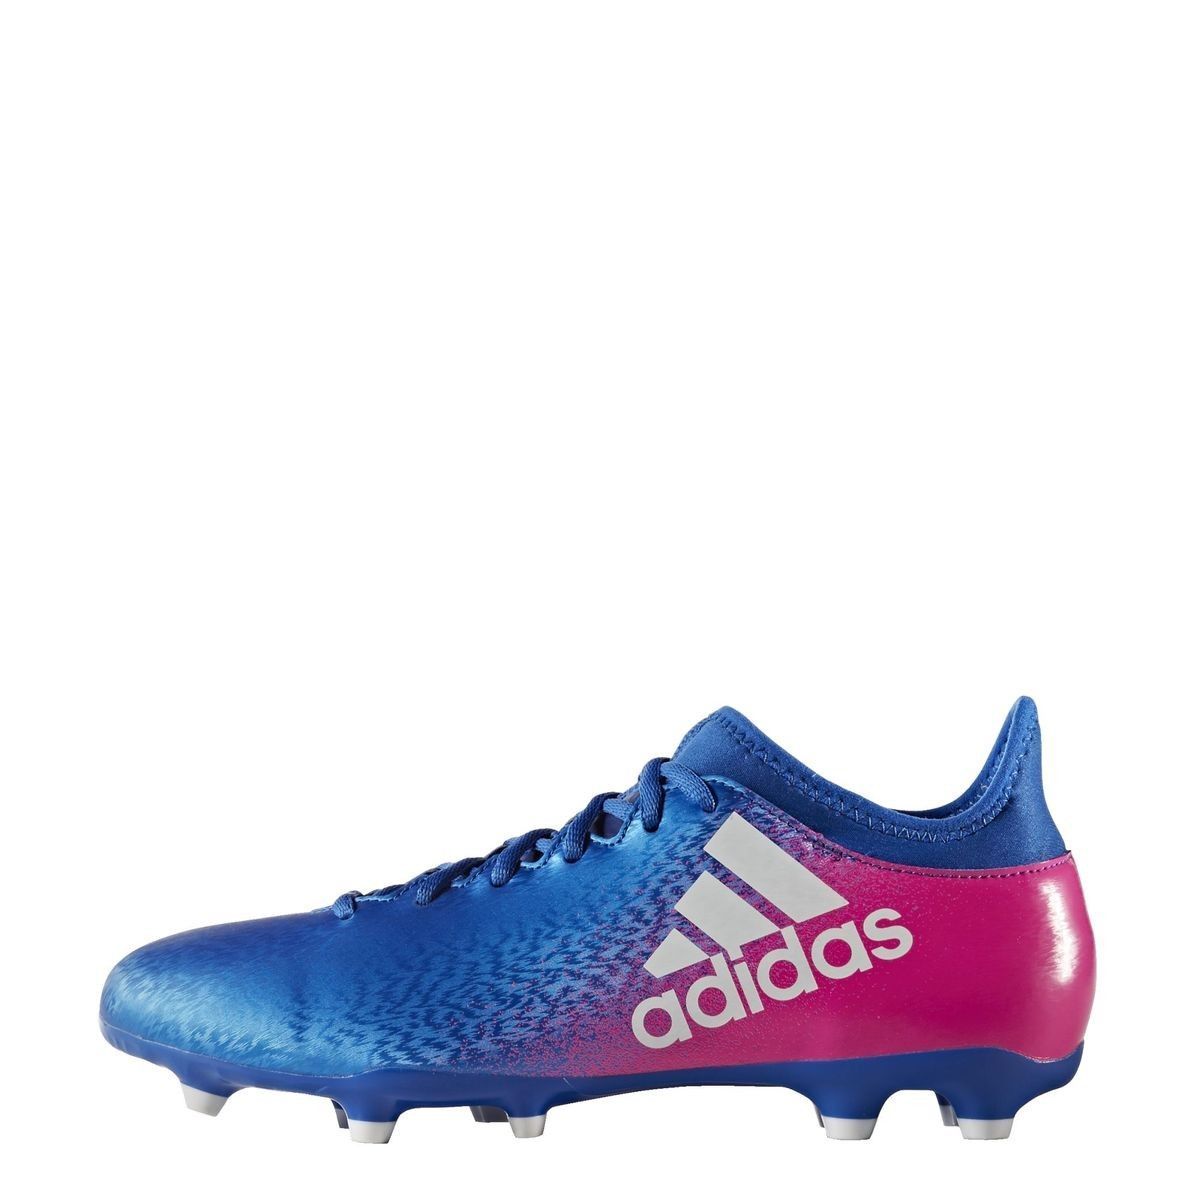 Chaussures Adidas 16 3 Bleu X Taille46Products Homme Fg wn8k0OP